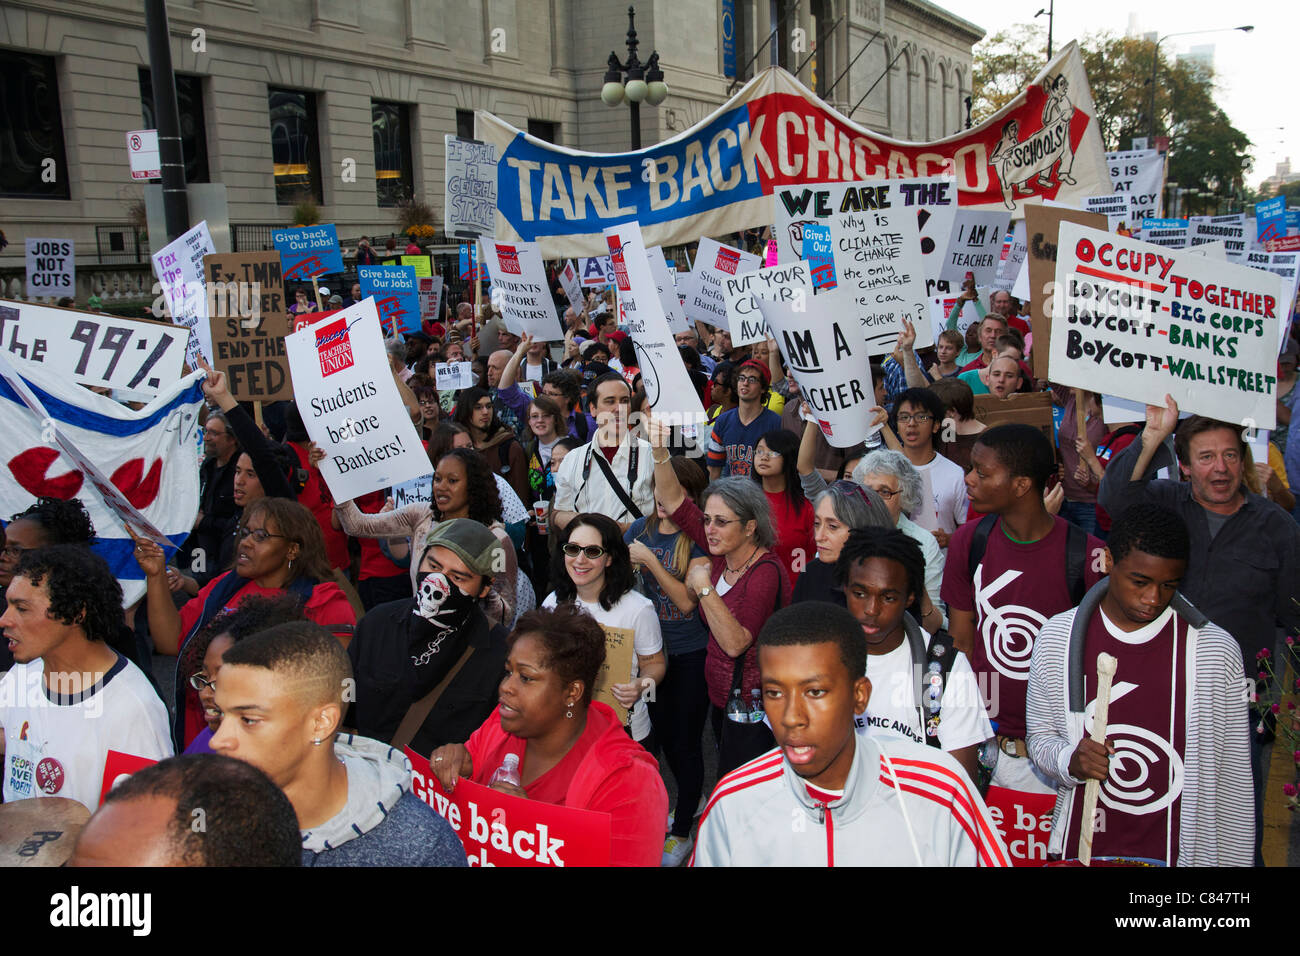 Protesters marching on Michigan Avenue. Occupy Chicago protest. - Stock Image